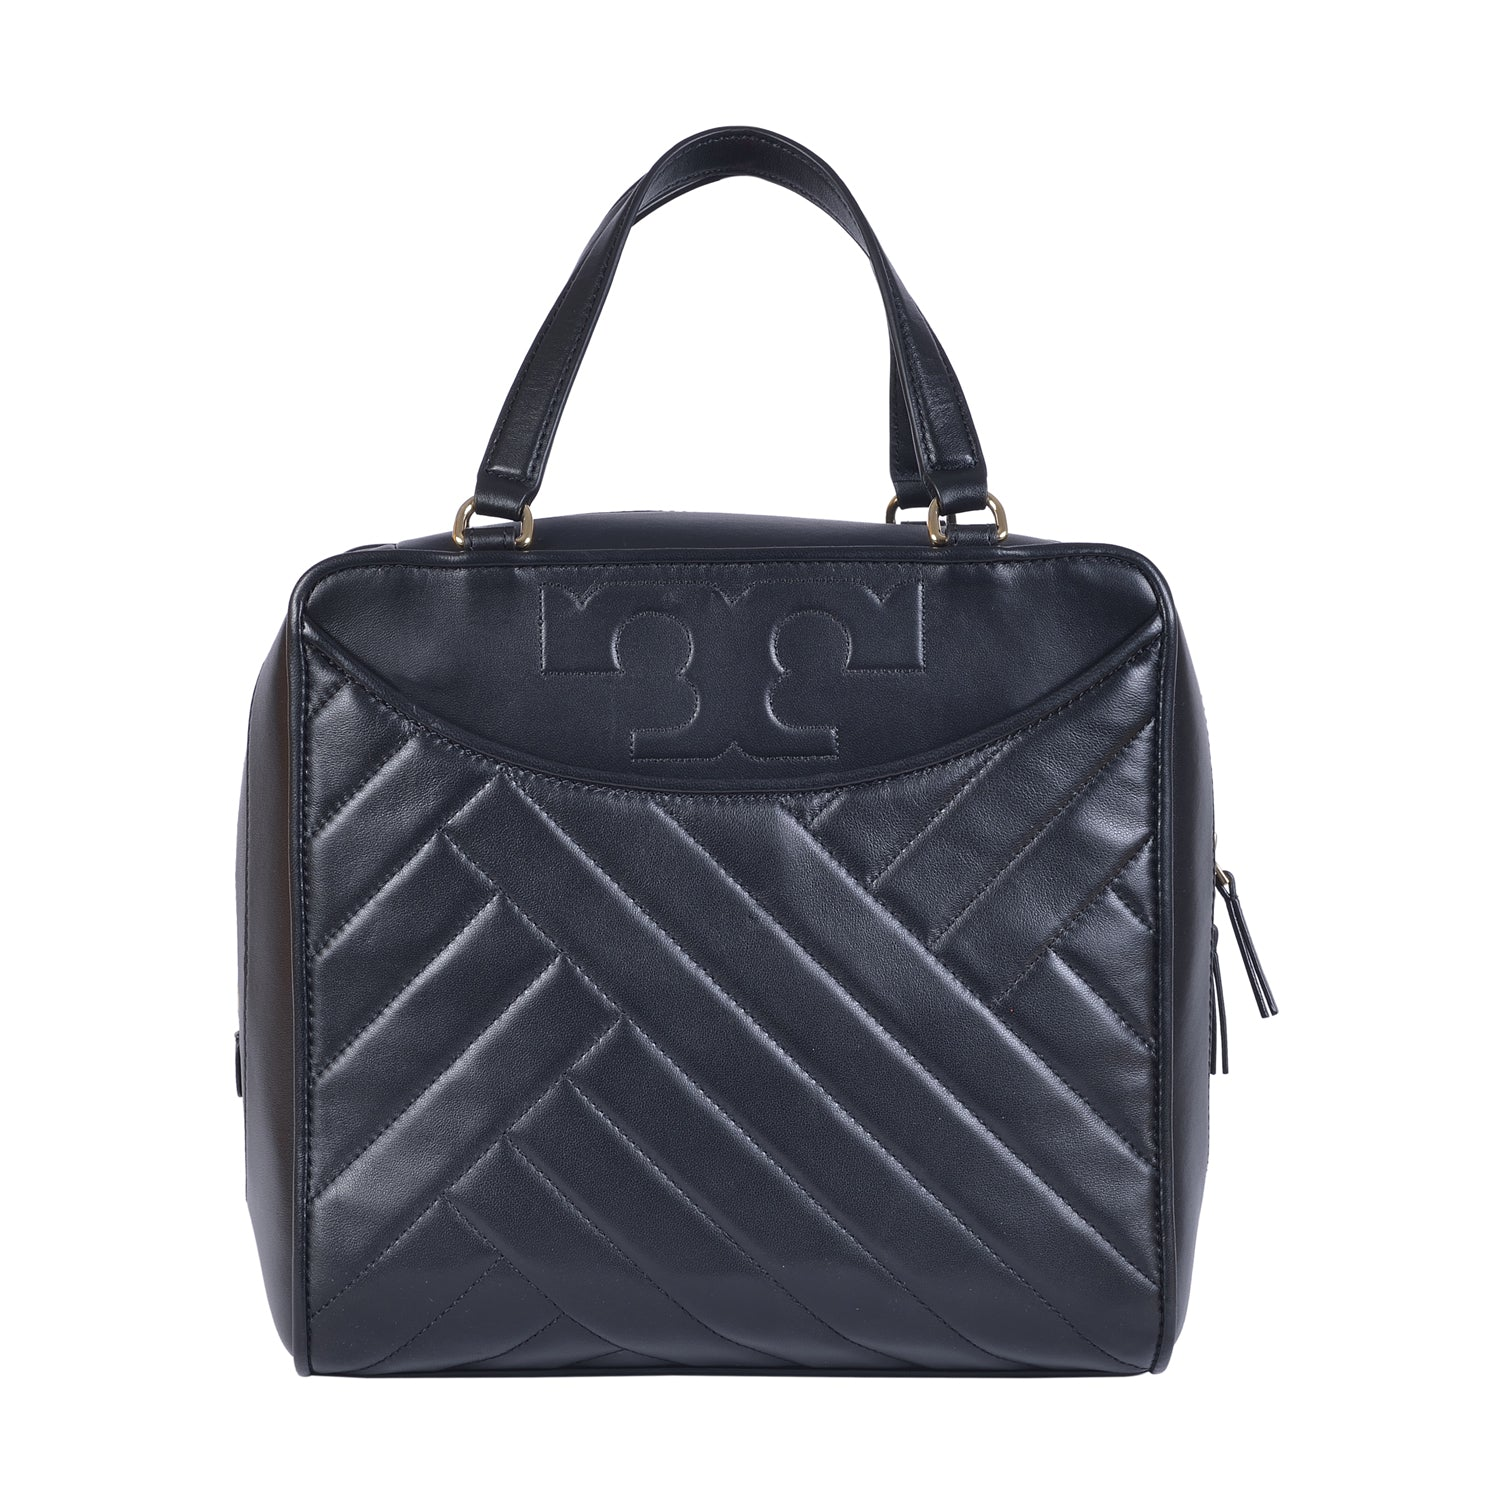 TORY BURCH ALEXA BLACK LEATHER SATCHEL BAG